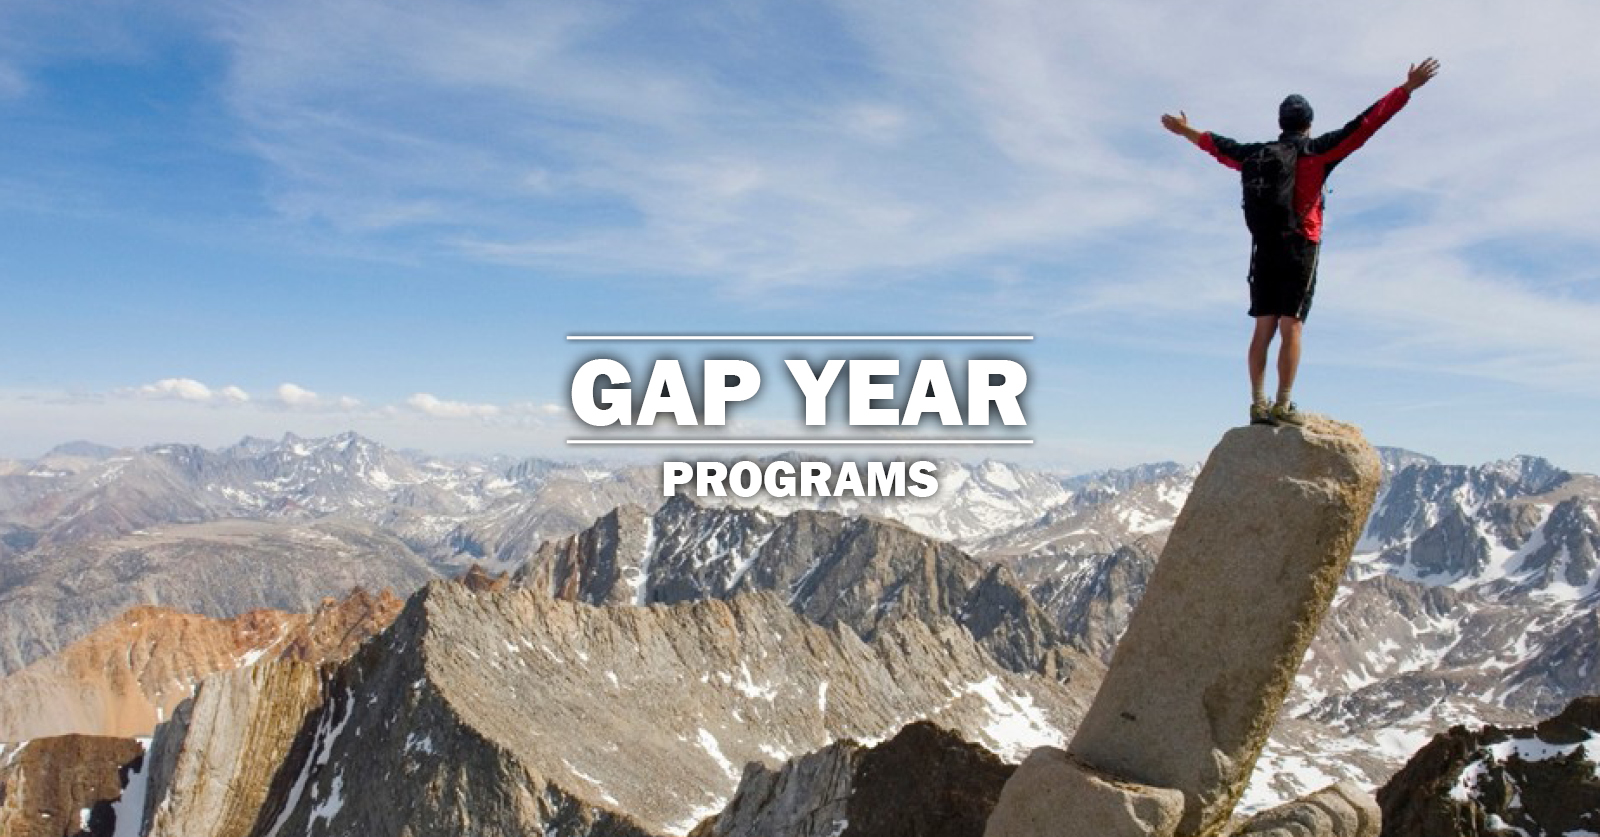 Gap Year Programs Joy Digital